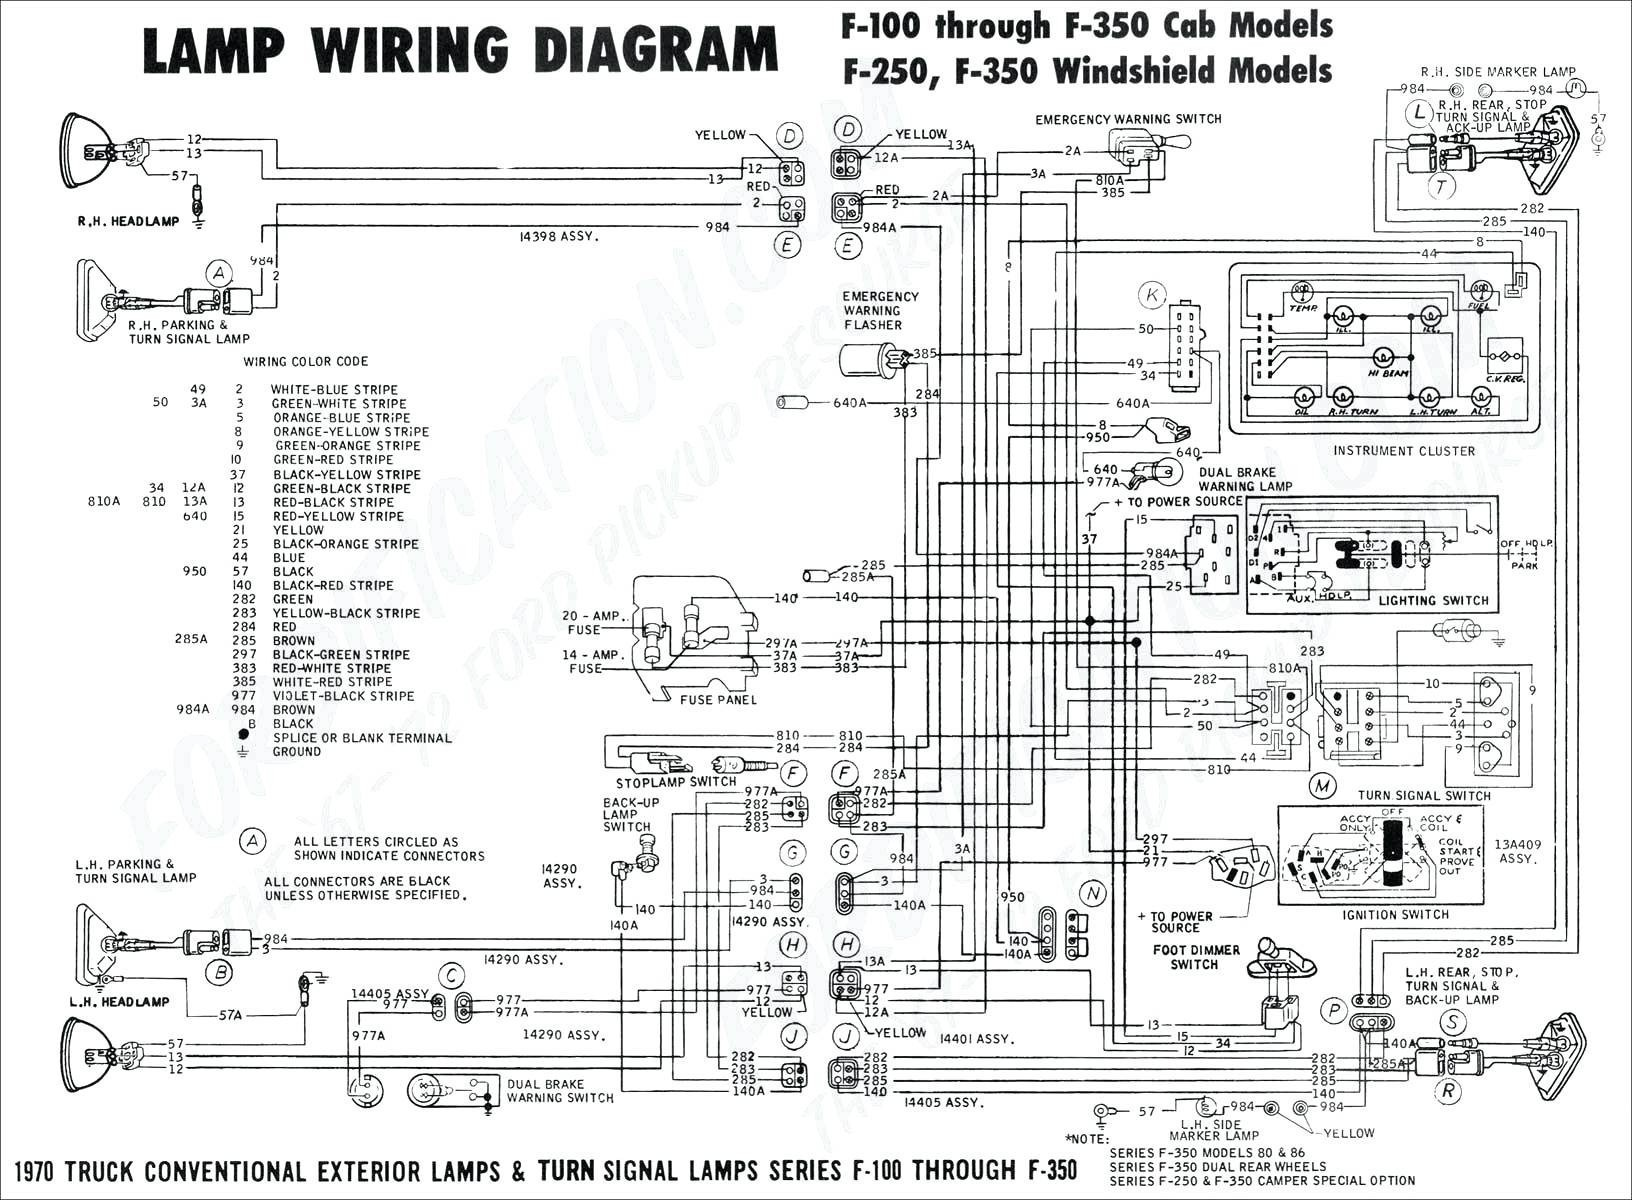 Simple Diesel Engine Diagram 97 ford F 350 7 3 Diesel Engine Diagram Of Simple Diesel Engine Diagram 97 ford F 350 7 3 Diesel Engine Diagram